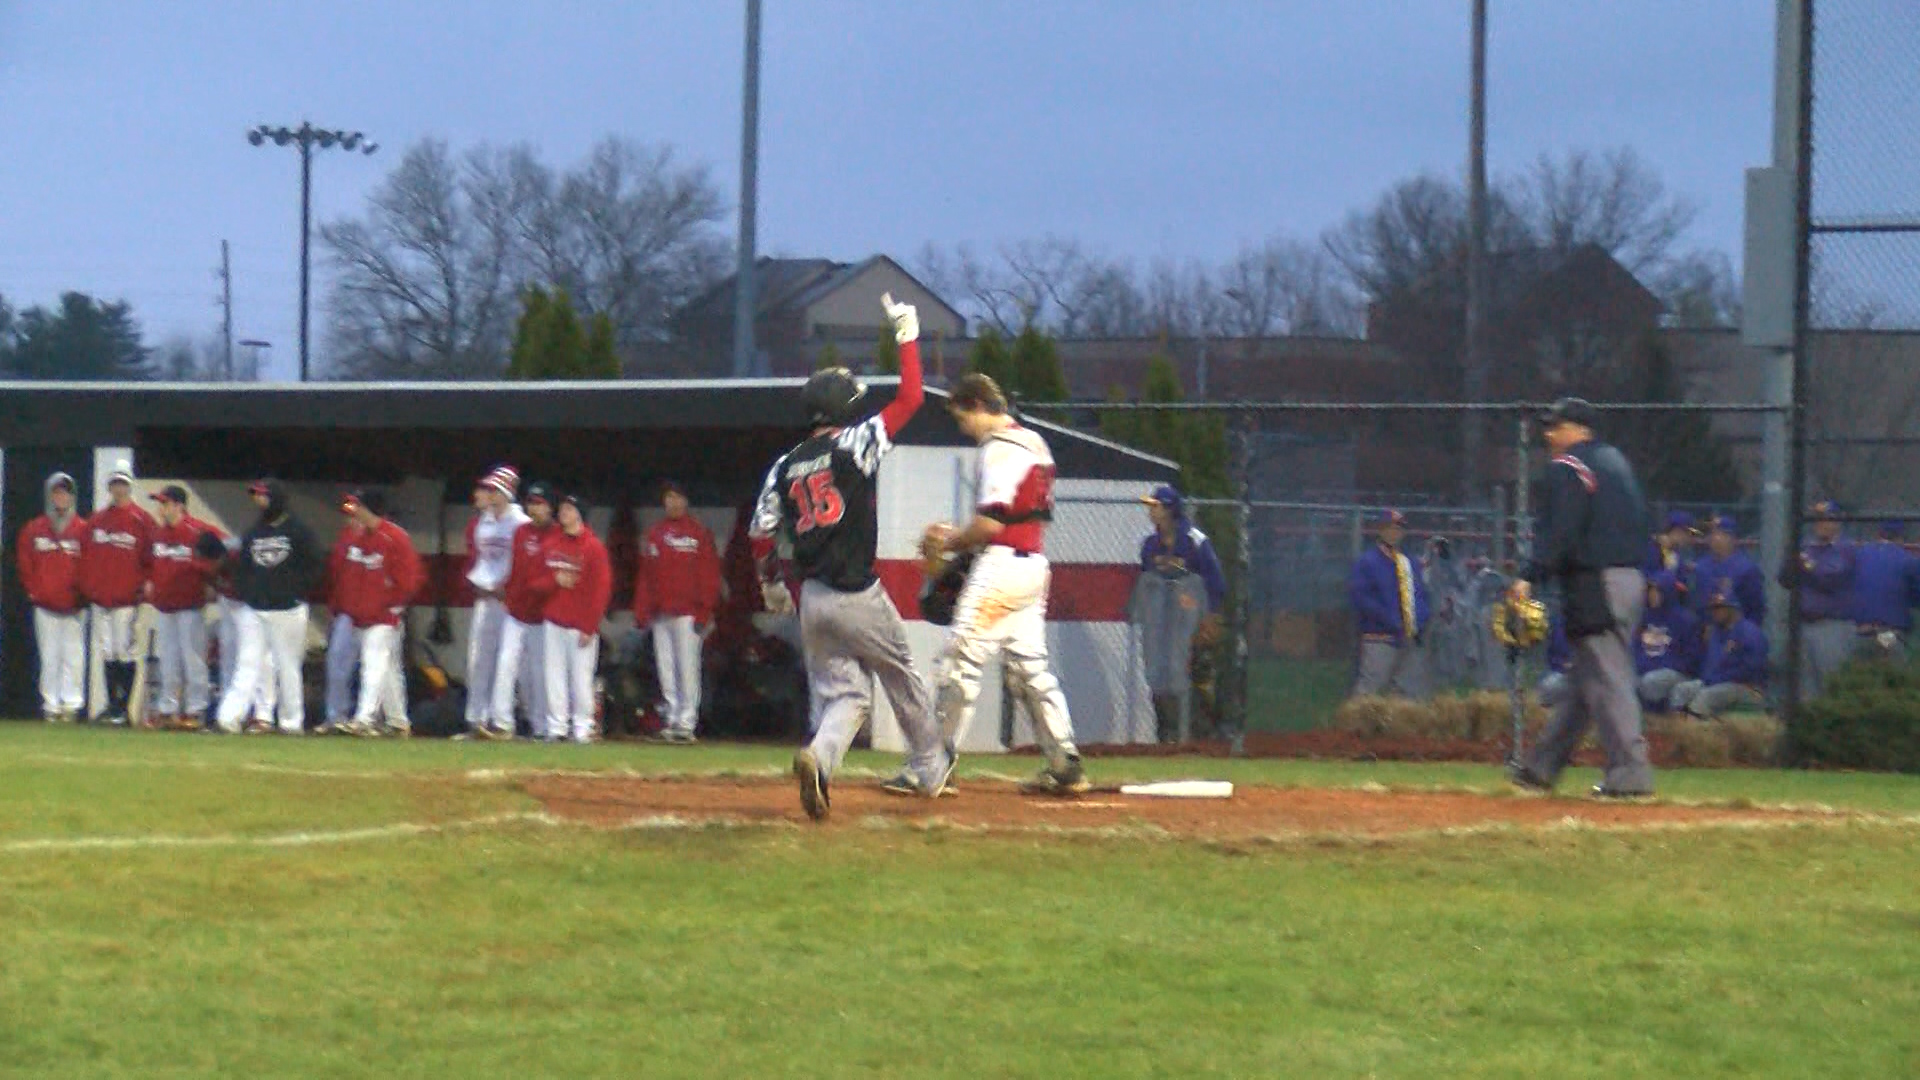 SOUTH WINS ON WALKOFF_1491016086739.jpg